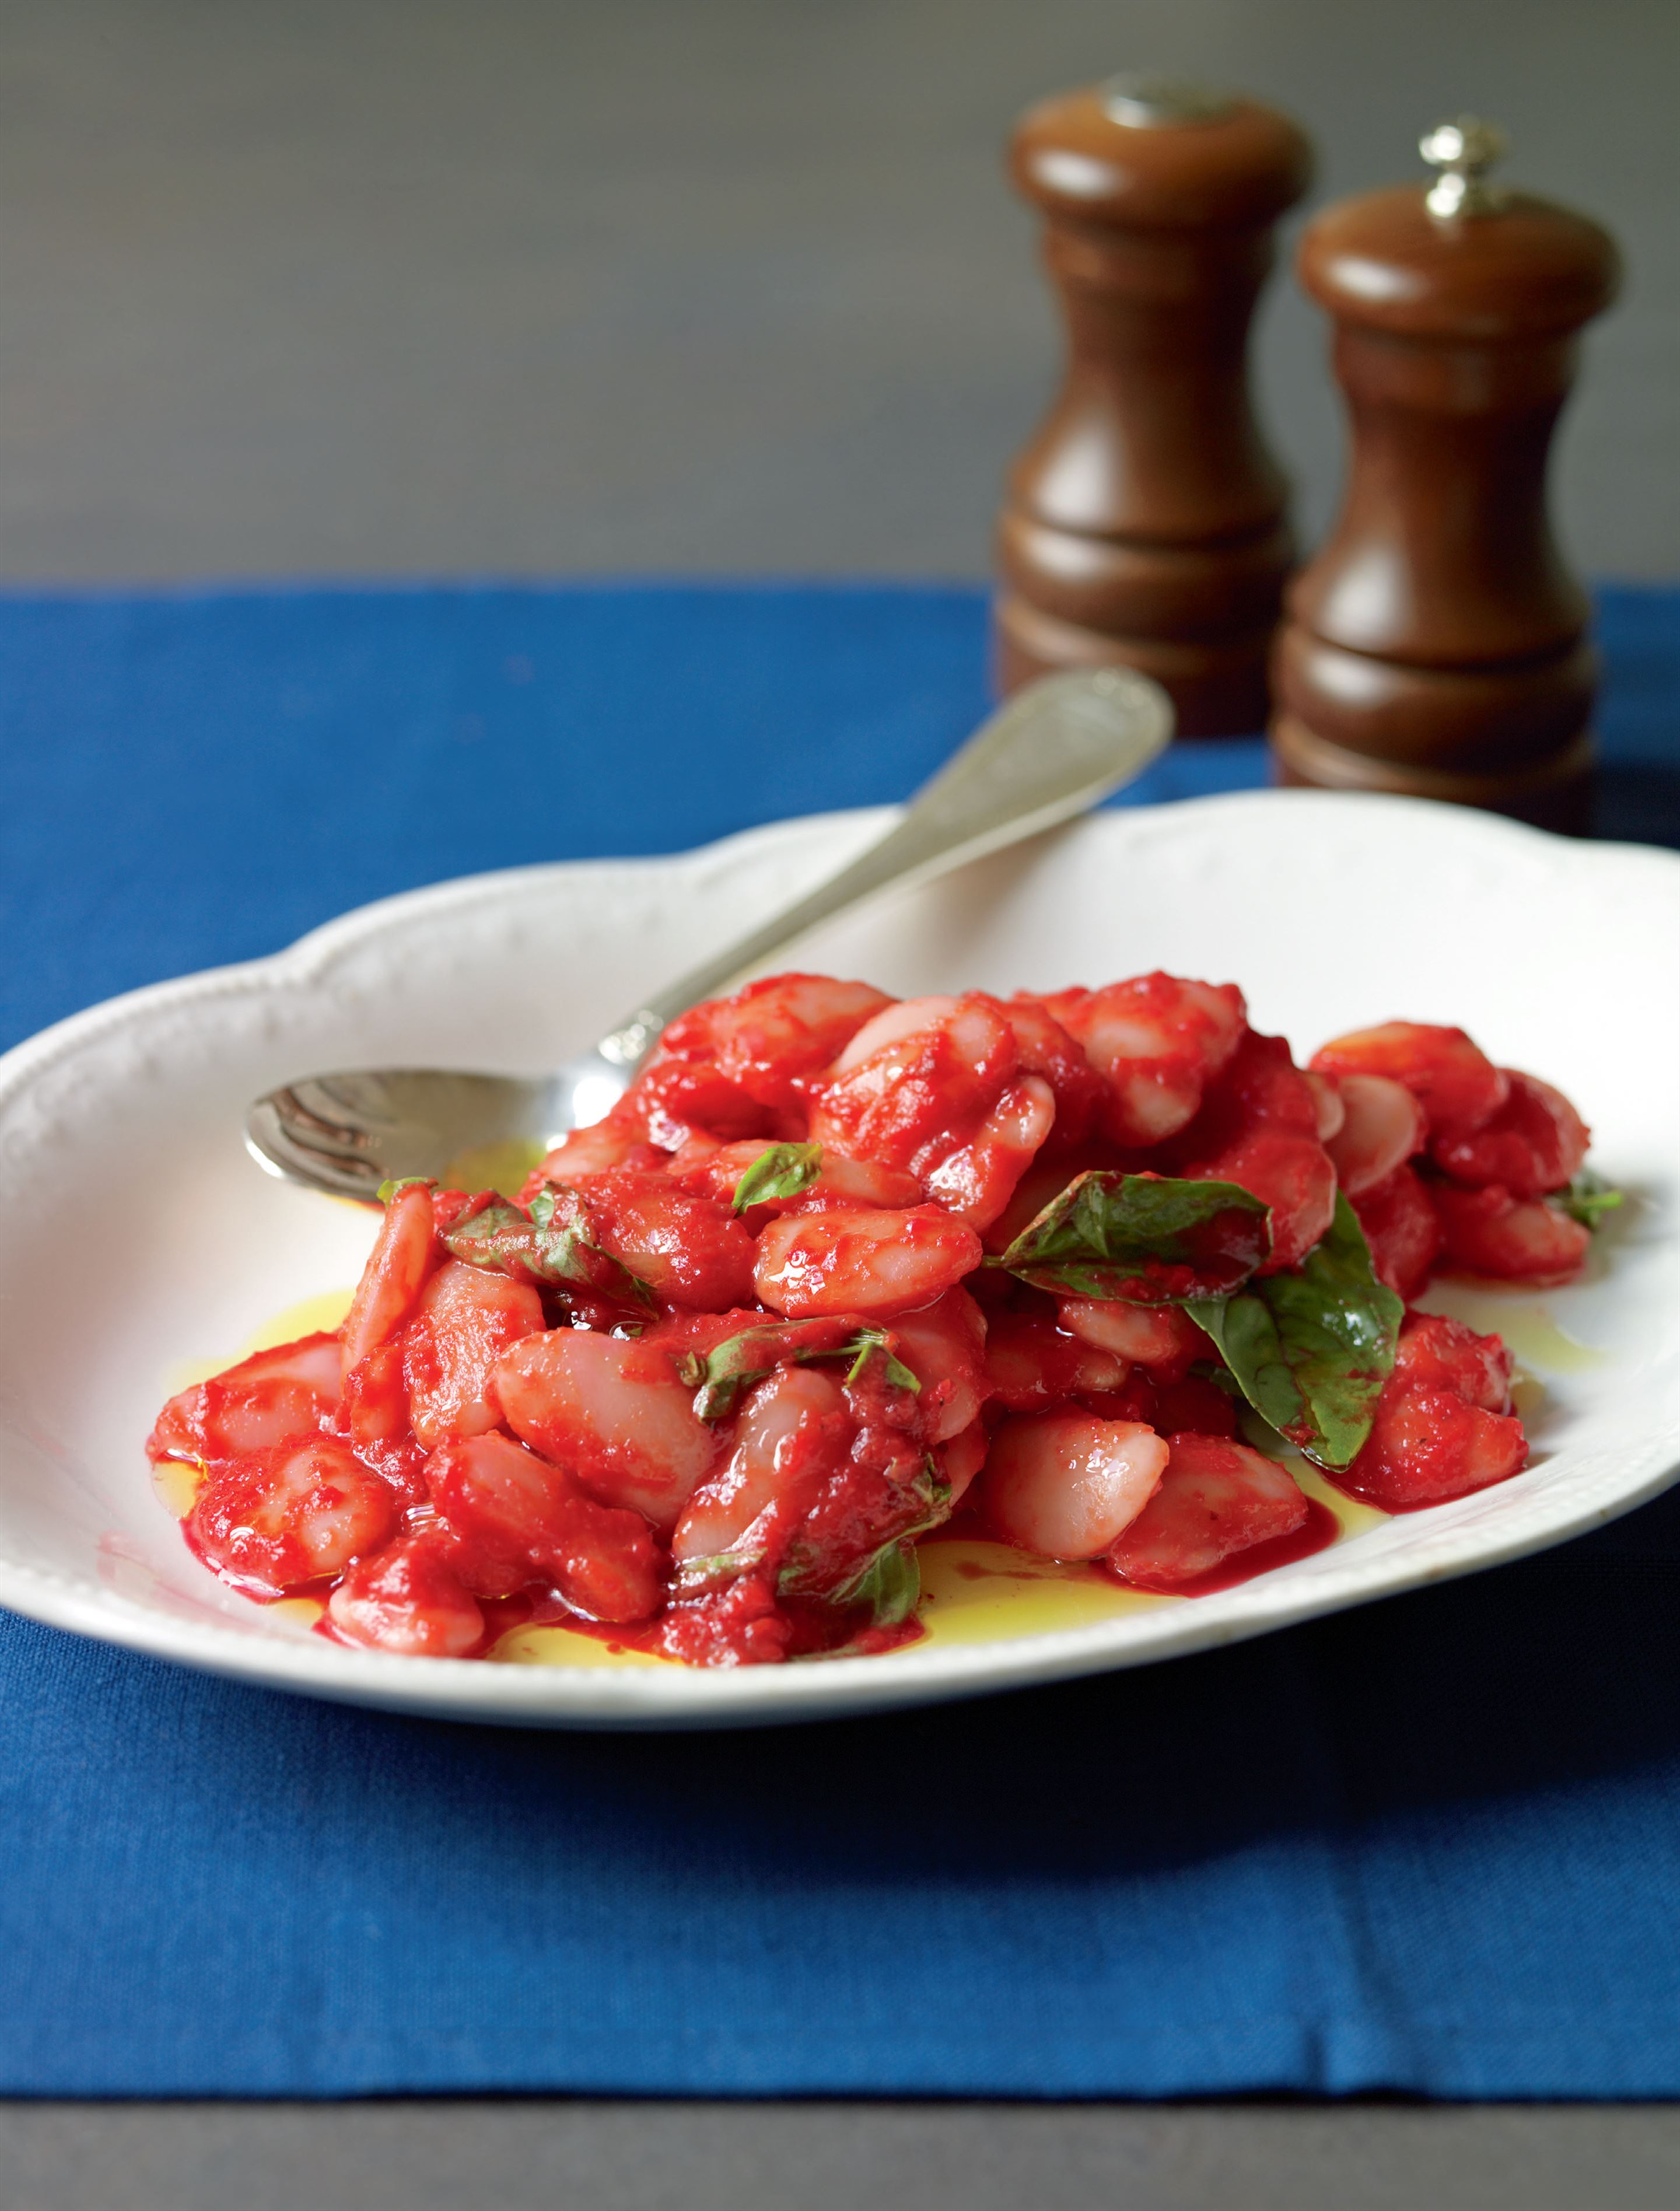 Lima beans in velvety red sauce